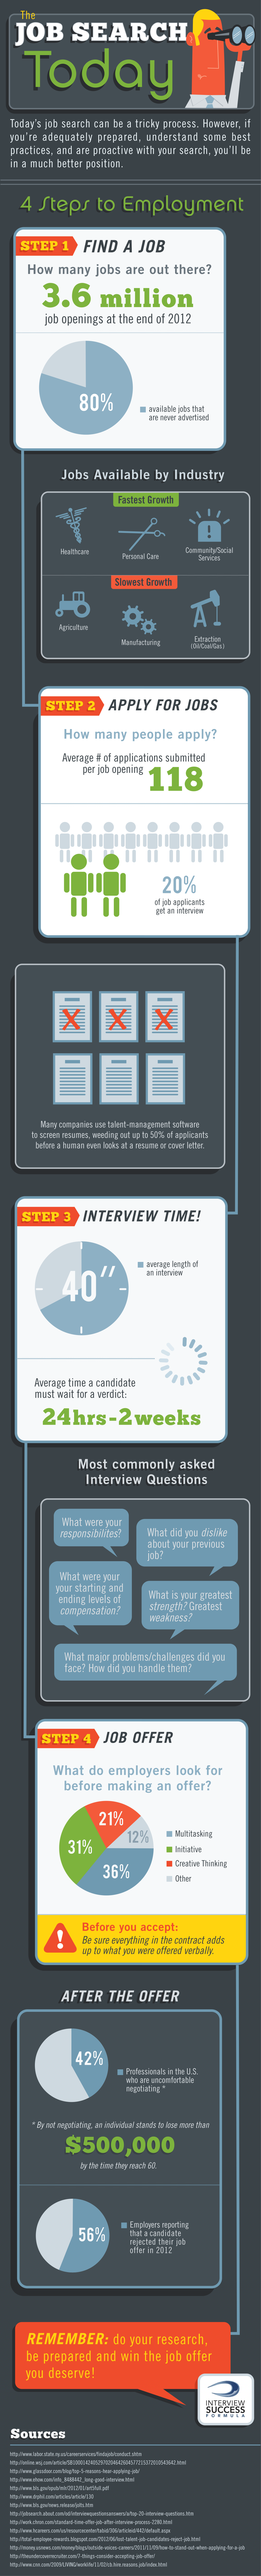 things you probably didn t know about your job search click here to see interviewsuccessformula com s infographic